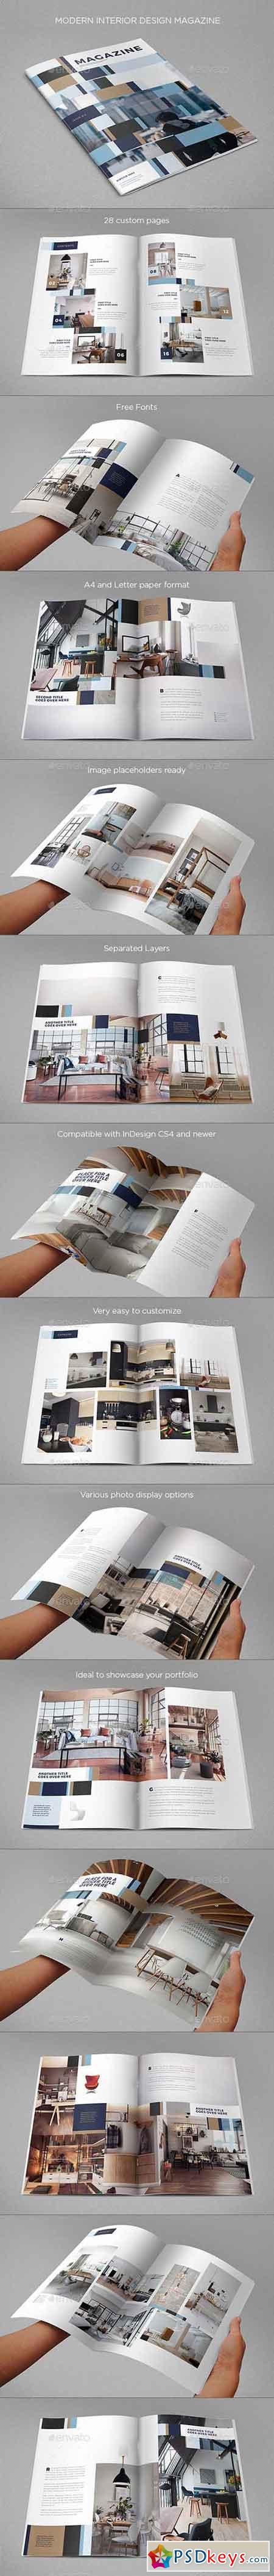 Modern Interior Design Magazine 17796332